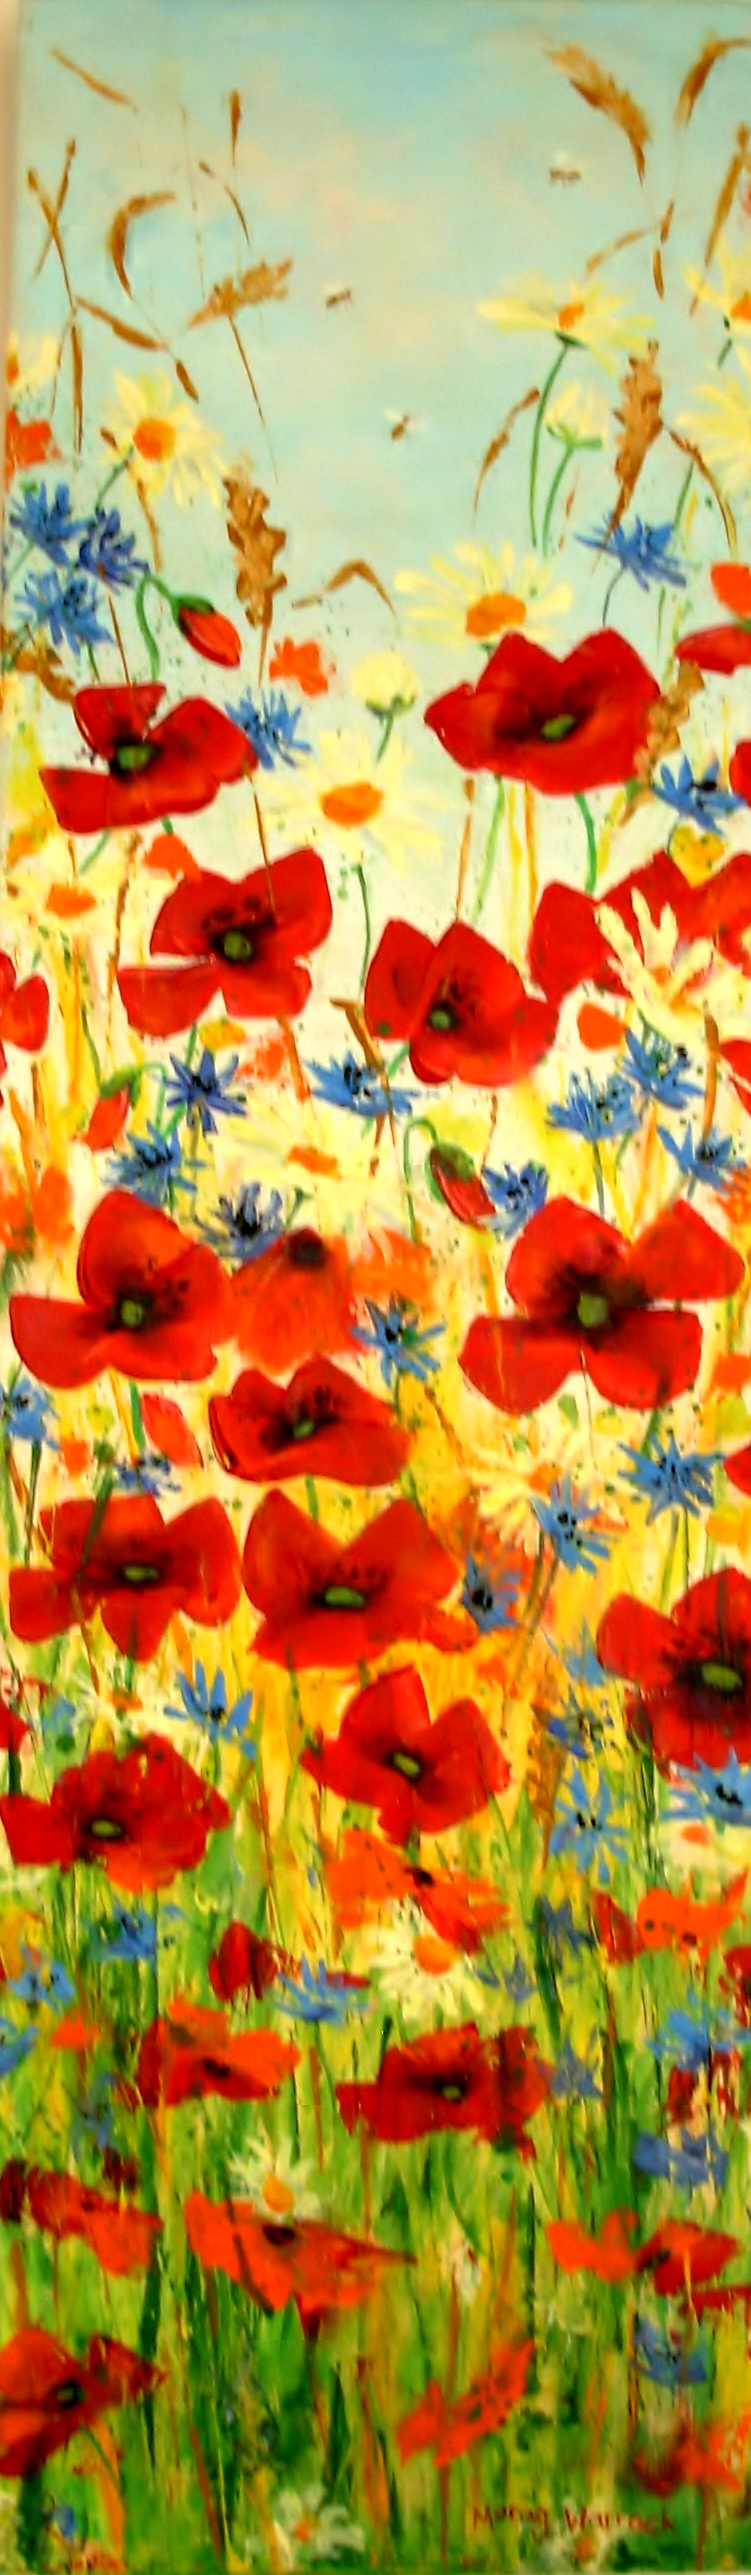 19 Poppy panel with Cornflowers.JPG